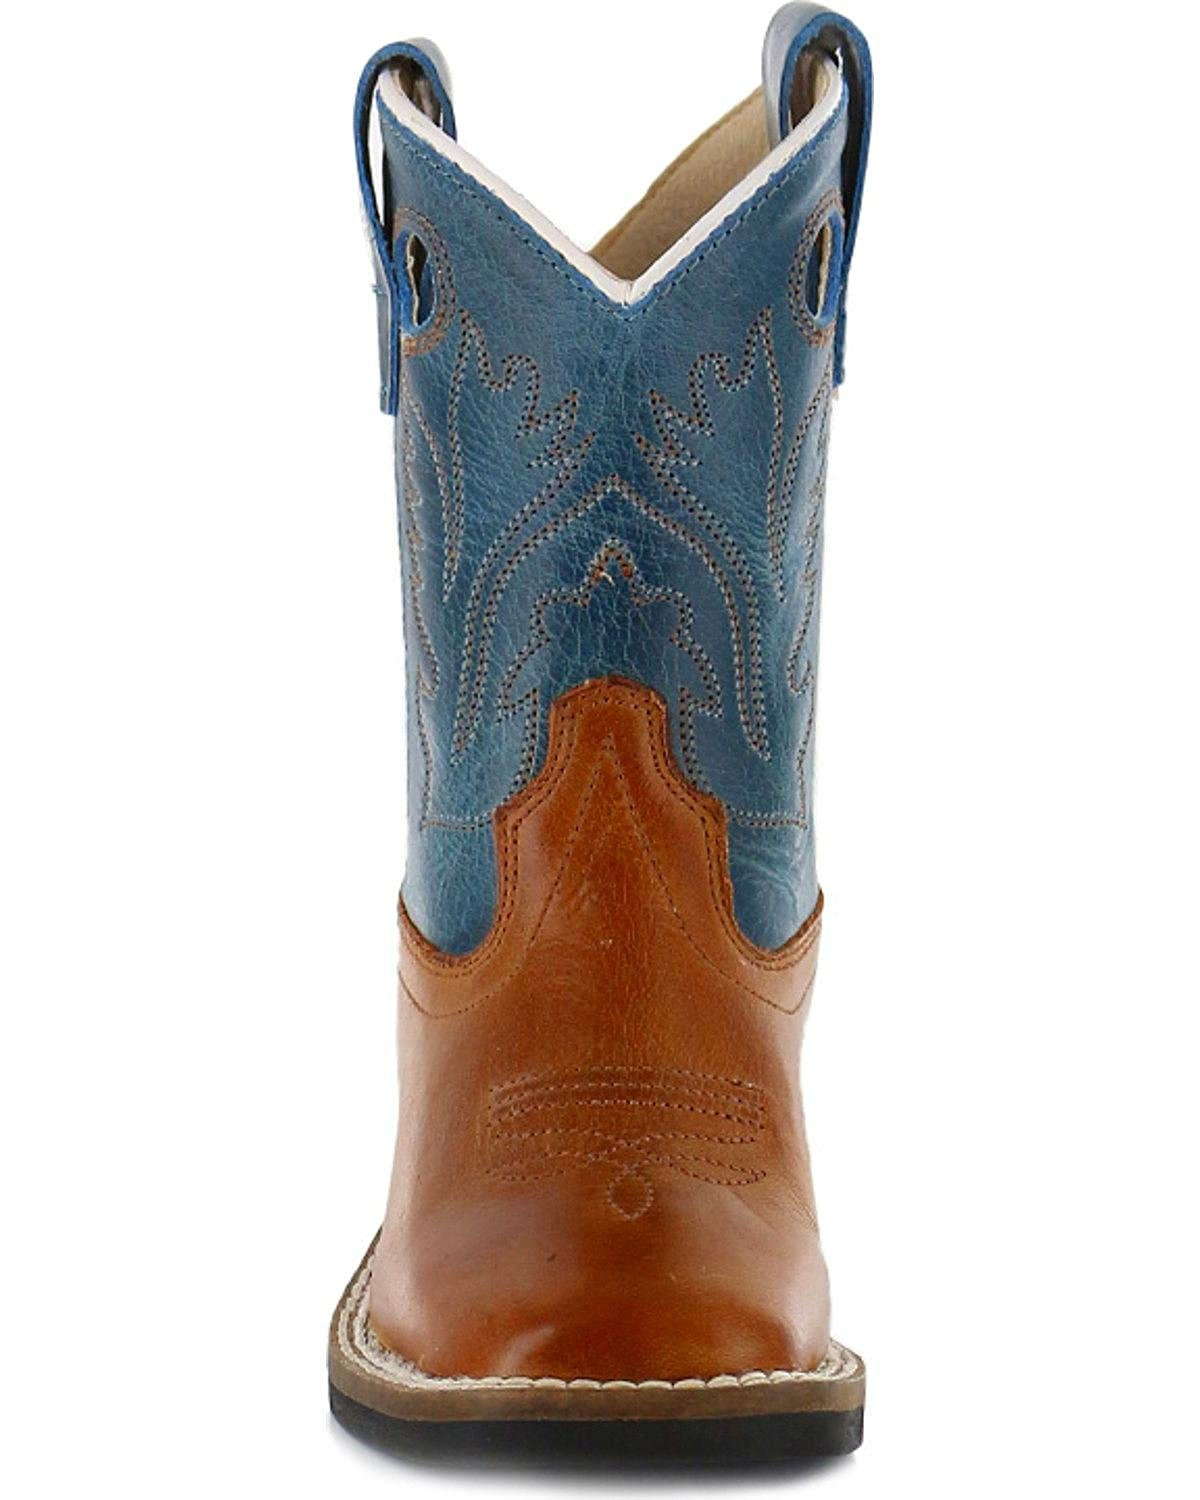 Bbsi1872 Cody James Toddler-Boys Western Boot Square Toe